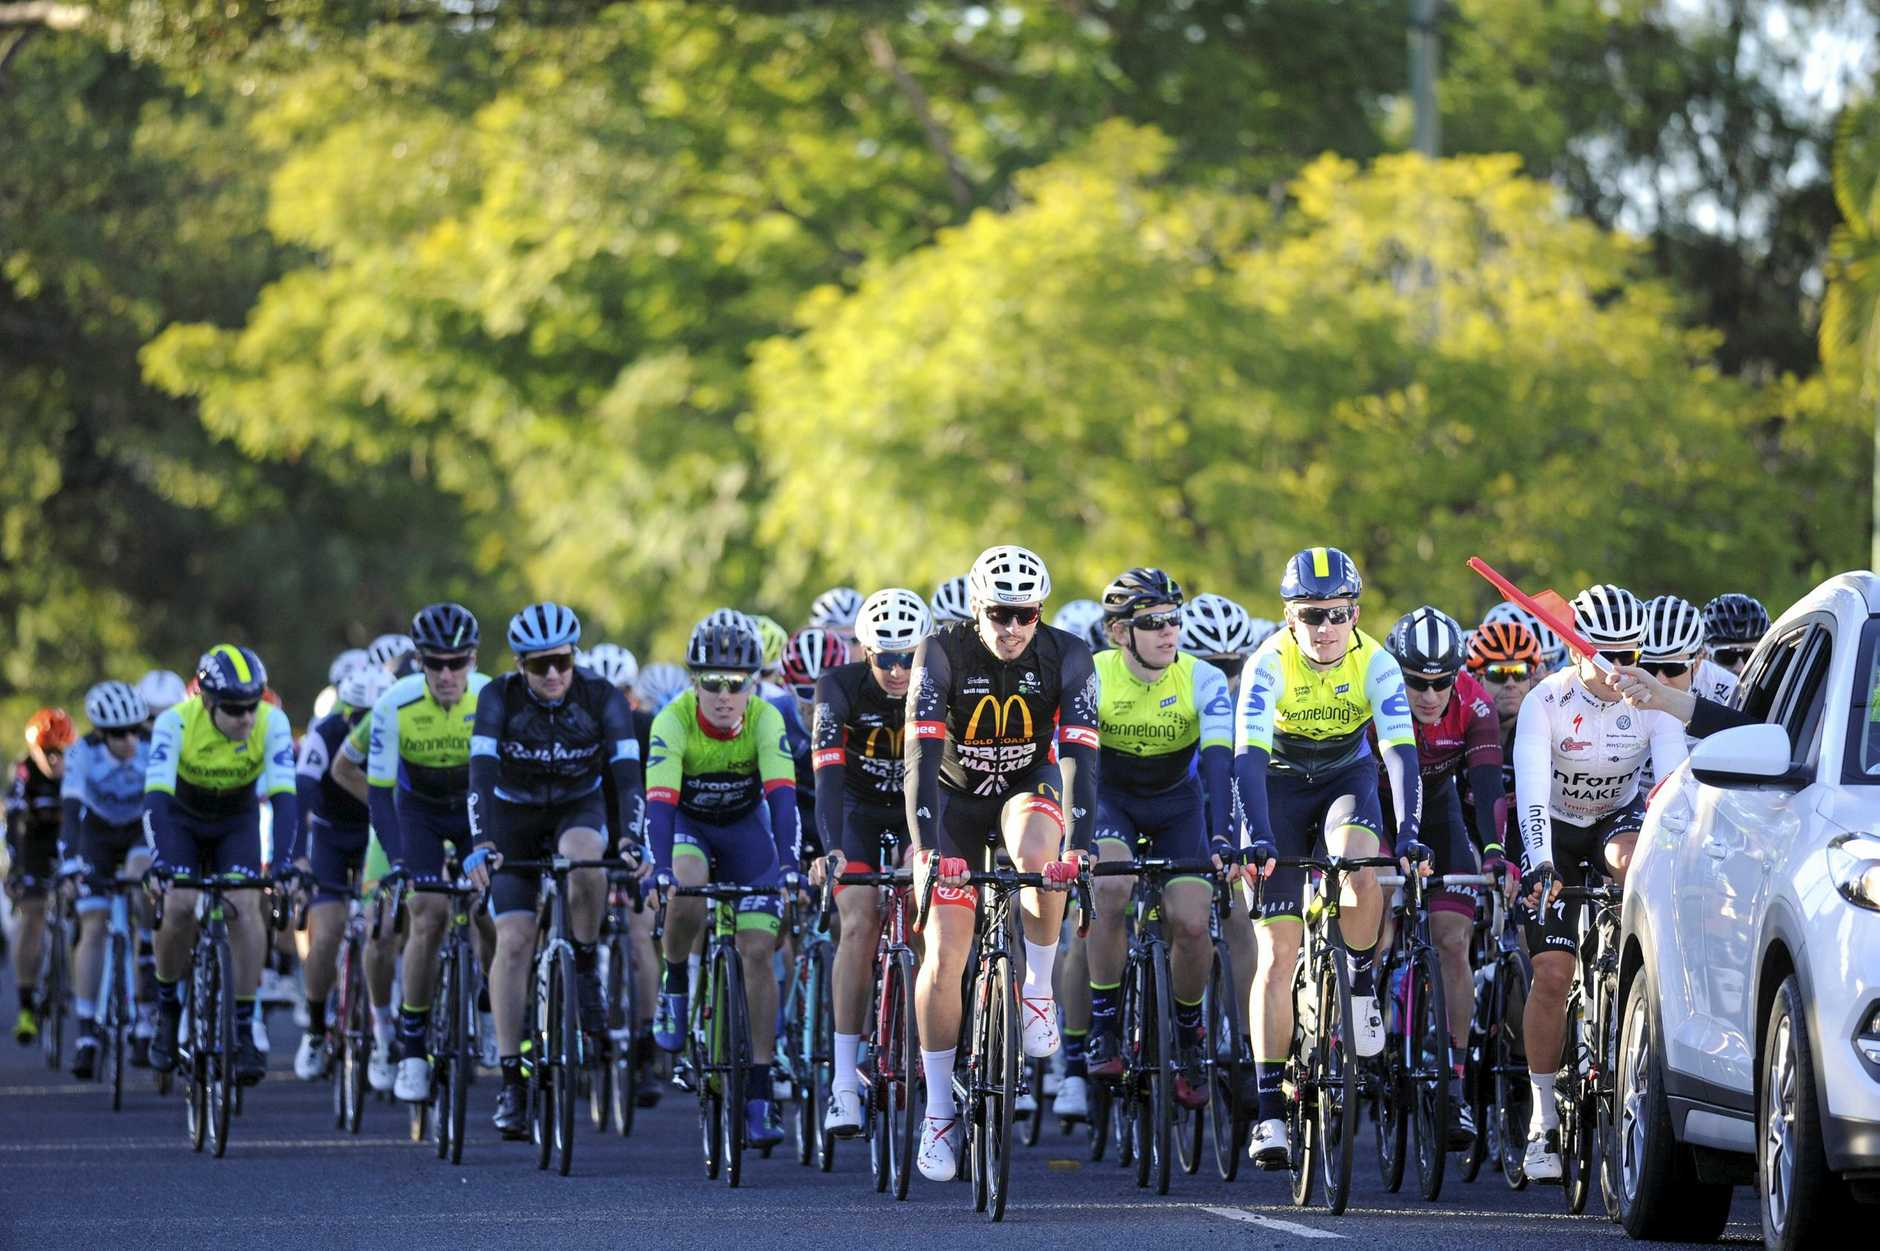 Competitors in the Cycling Australia National Road Series kickstarted their season on South Grafton's Ryan Street during the 58th annual David Reid Homes Grafton to Inverell Cycle Classic.